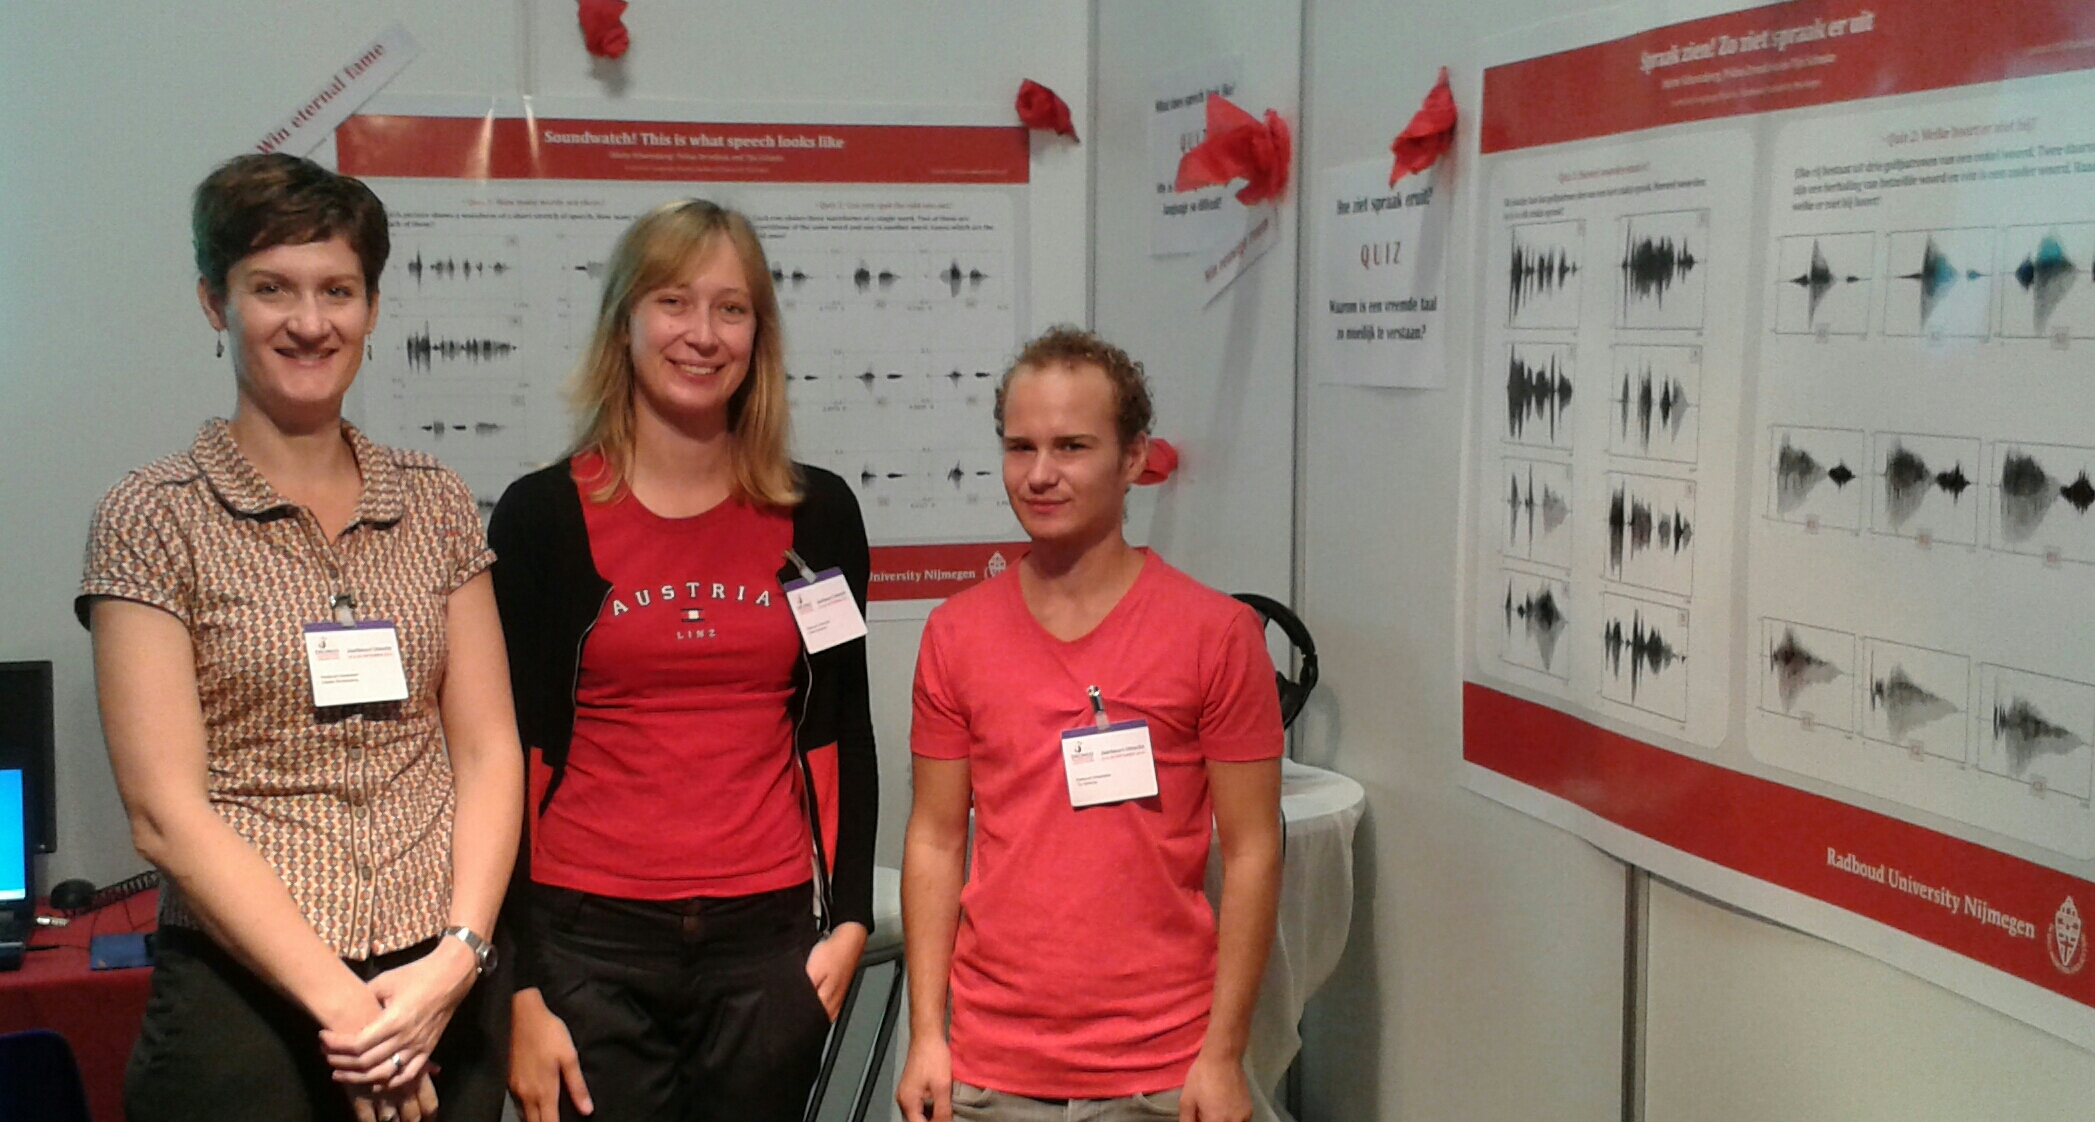 Soundwatch! This is what speech looks like; quiz during the public Drongo language festival, Utrecht, 25-26 Sept 2015.